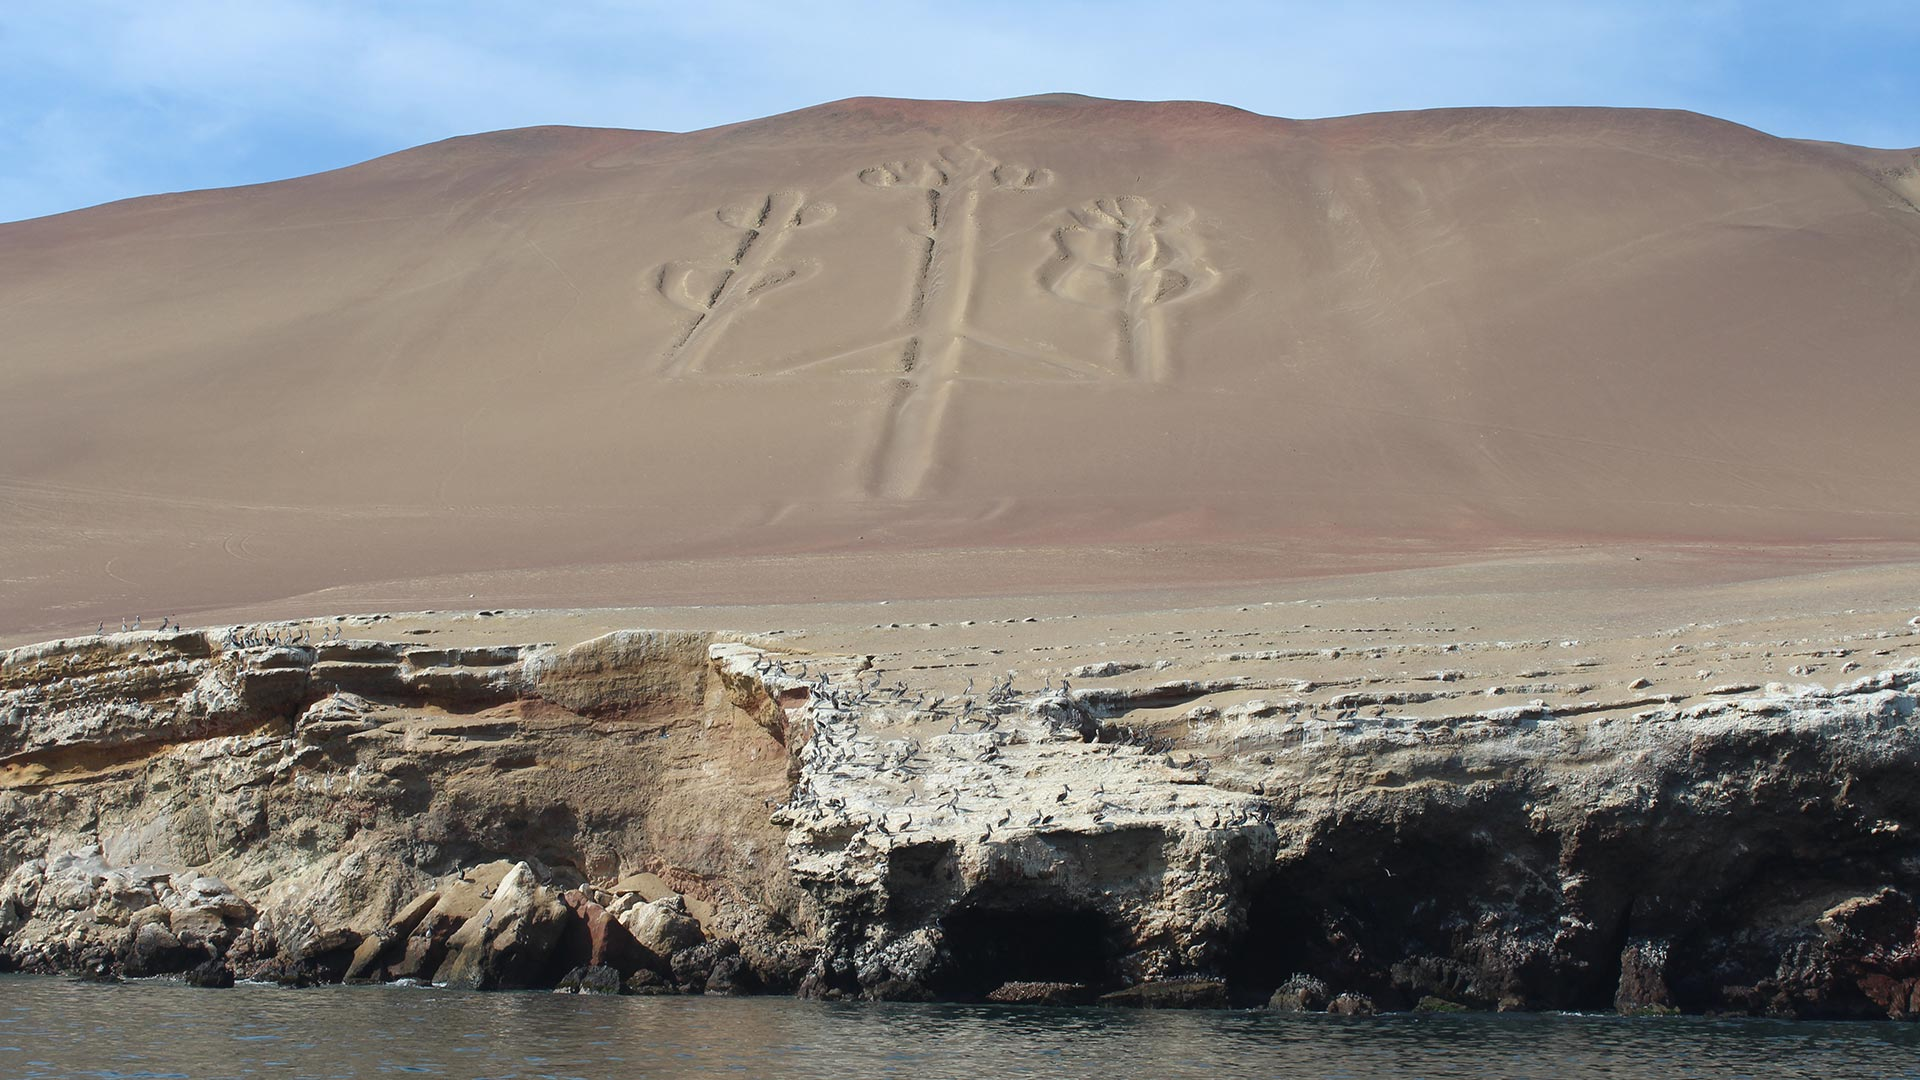 http://infromtheoutpost.com Geoglyphs at Paracas in southern Peru